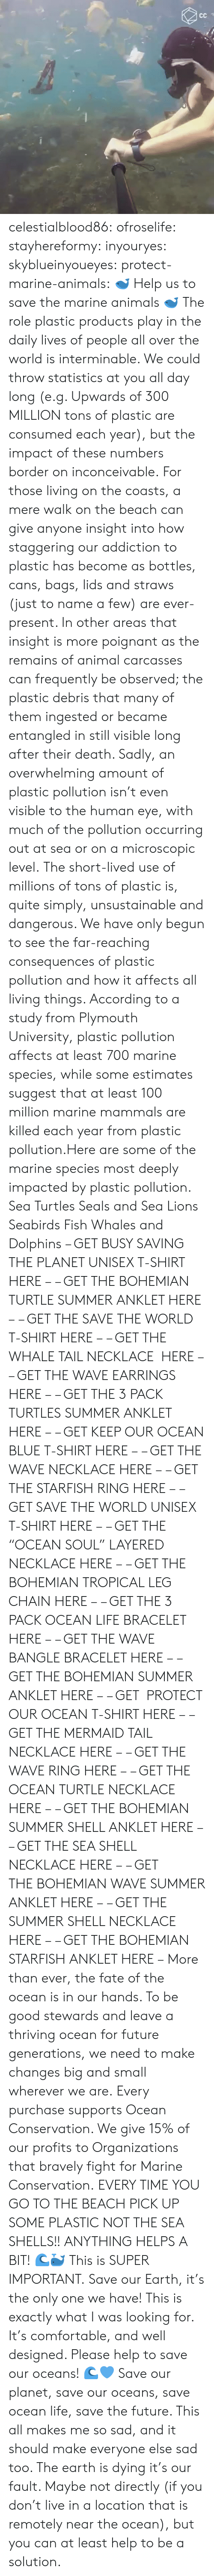 "Overwhelming Amount: celestialblood86:  ofroselife: stayhereformy:  inyouryes:  skyblueinyoueyes:  protect-marine-animals:  🐋 Help us to save the marine animals 🐋 The role plastic products play in the daily lives of people all over the world is interminable. We could throw statistics at you all day long (e.g. Upwards of 300 MILLION tons of plastic are consumed each year), but the impact of these numbers border on inconceivable. For those living on the coasts, a mere walk on the beach can give anyone insight into how staggering our addiction to plastic has become as bottles, cans, bags, lids and straws (just to name a few) are ever-present. In other areas that insight is more poignant as the remains of animal carcasses can frequently be observed; the plastic debris that many of them ingested or became entangled in still visible long after their death. Sadly, an overwhelming amount of plastic pollution isn't even visible to the human eye, with much of the pollution occurring out at sea or on a microscopic level. The short-lived use of millions of tons of plastic is, quite simply, unsustainable and dangerous. We have only begun to see the far-reaching consequences of plastic pollution and how it affects all living things. According to a study from Plymouth University, plastic pollution affects at least 700 marine species, while some estimates suggest that at least 100 million marine mammals are killed each year from plastic pollution.Here are some of the marine species most deeply impacted by plastic pollution. Sea Turtles Seals and Sea Lions Seabirds Fish Whales and Dolphins – GET BUSY SAVING THE PLANET UNISEX T-SHIRT HERE – – GET THE BOHEMIAN TURTLE SUMMER ANKLET HERE – – GET THE SAVE THE WORLD T-SHIRT HERE – – GET THE WHALE TAIL NECKLACE  HERE – – GET THE WAVE EARRINGS HERE – – GET THE 3 PACK TURTLES SUMMER ANKLET HERE – – GET KEEP OUR OCEAN BLUE T-SHIRT HERE – – GET THE WAVE NECKLACE HERE – – GET THE STARFISH RING HERE – – GET SAVE THE WORLD UNISEX T-SHIRT HERE – – GET THE ""OCEAN SOUL"" LAYERED NECKLACE HERE – – GET THE BOHEMIAN TROPICAL LEG CHAIN HERE – – GET THE 3 PACK OCEAN LIFE BRACELET HERE – – GET THE WAVE BANGLE BRACELET HERE – – GET THE BOHEMIAN SUMMER ANKLET HERE – – GET  PROTECT OUR OCEAN T-SHIRT HERE – – GET THE MERMAID TAIL NECKLACE HERE – – GET THE WAVE RING HERE – – GET THE OCEAN TURTLE NECKLACE HERE – – GET THE BOHEMIAN SUMMER SHELL ANKLET HERE – – GET THE SEA SHELL NECKLACE HERE – – GET THE BOHEMIAN WAVE SUMMER ANKLET HERE – – GET THE SUMMER SHELL NECKLACE HERE – – GET THE BOHEMIAN STARFISH ANKLET HERE – More than ever, the fate of the ocean is in our hands. To be good stewards and leave a thriving ocean for future generations, we need to make changes big and small wherever we are. Every purchase supports Ocean Conservation. We give 15% of our profits to Organizations that bravely fight for Marine Conservation.  EVERY TIME YOU GO TO THE BEACH PICK UP SOME PLASTIC NOT THE SEA SHELLS!! ANYTHING HELPS A BIT! 🌊🐳  This is SUPER IMPORTANT.  Save our Earth, it's the only one we have!  This is exactly what I was looking for. It's comfortable, and well designed. Please help to save our oceans! 🌊💙  Save our planet, save our oceans, save ocean life, save the future. This all makes me so sad, and it should make everyone else sad too. The earth is dying it's our fault. Maybe not directly (if you don't live in a location that is remotely near the ocean), but you can at least help to be a solution."